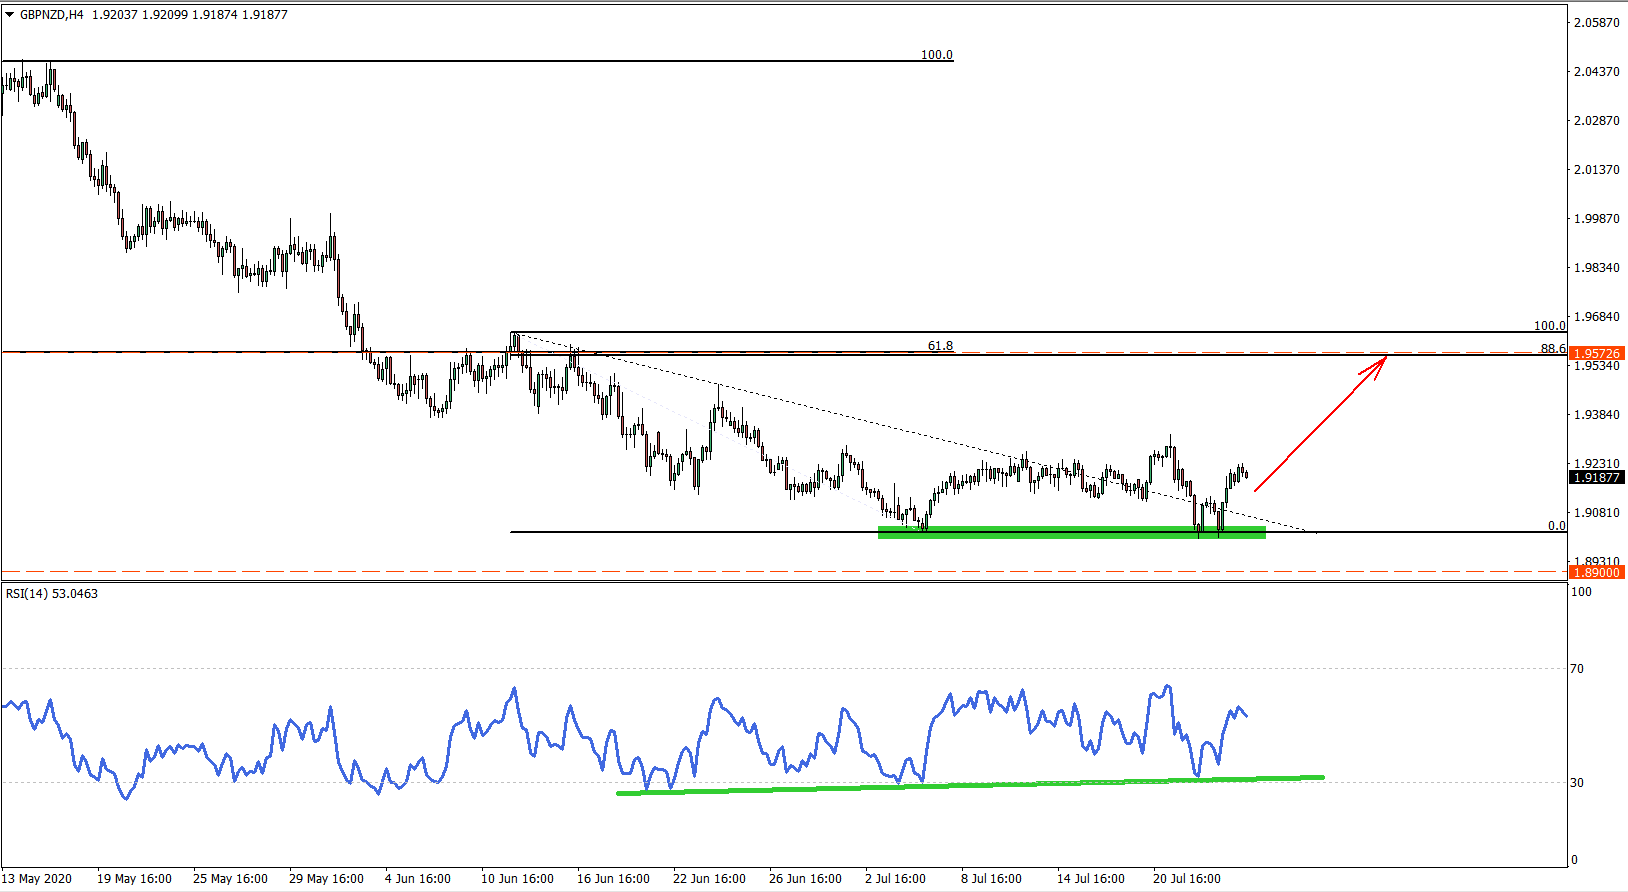 GBPNZD 4 hour chart July 24th 2020